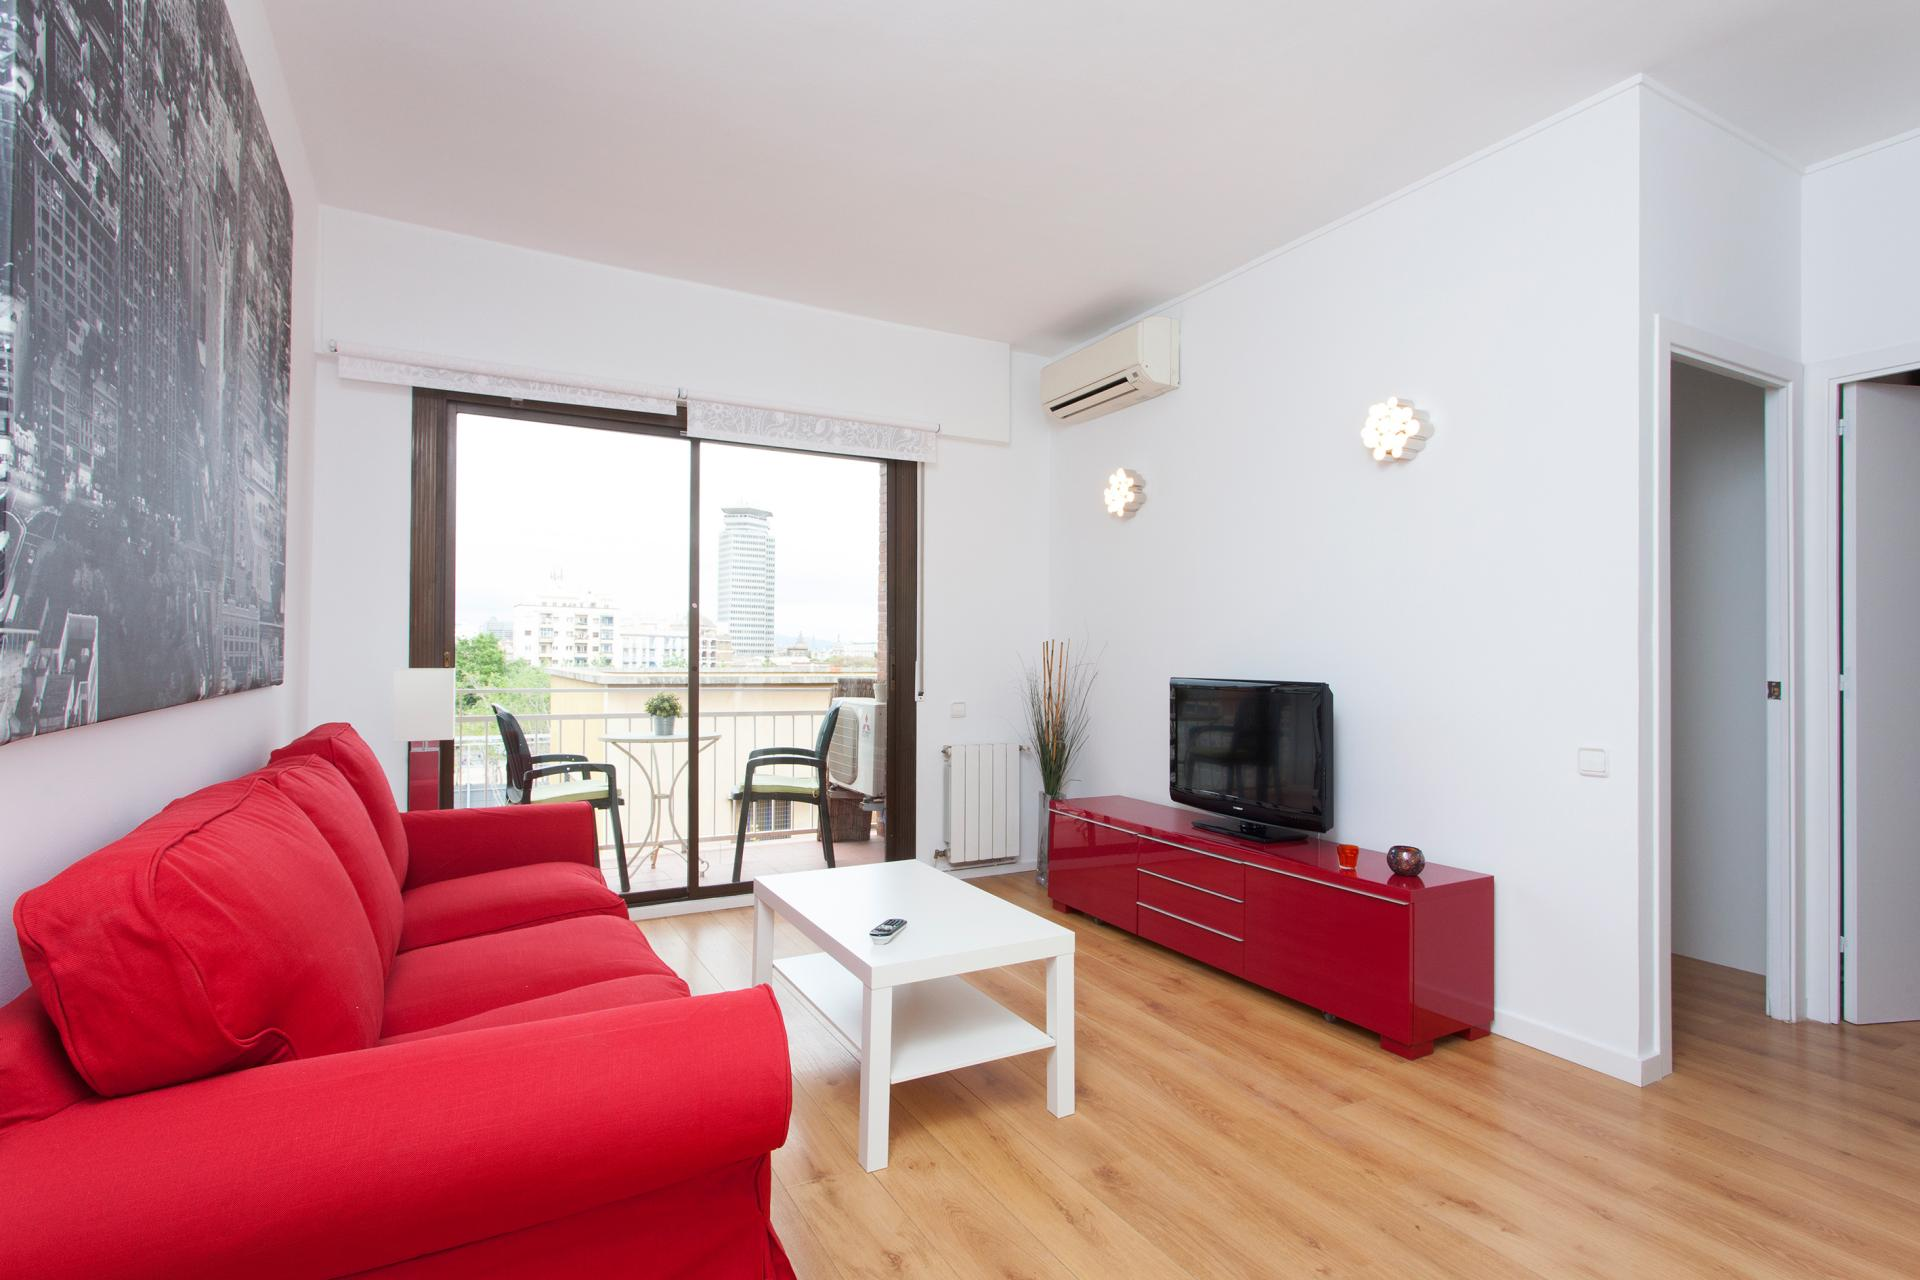 Appartment for rent close to Barcelona's port area